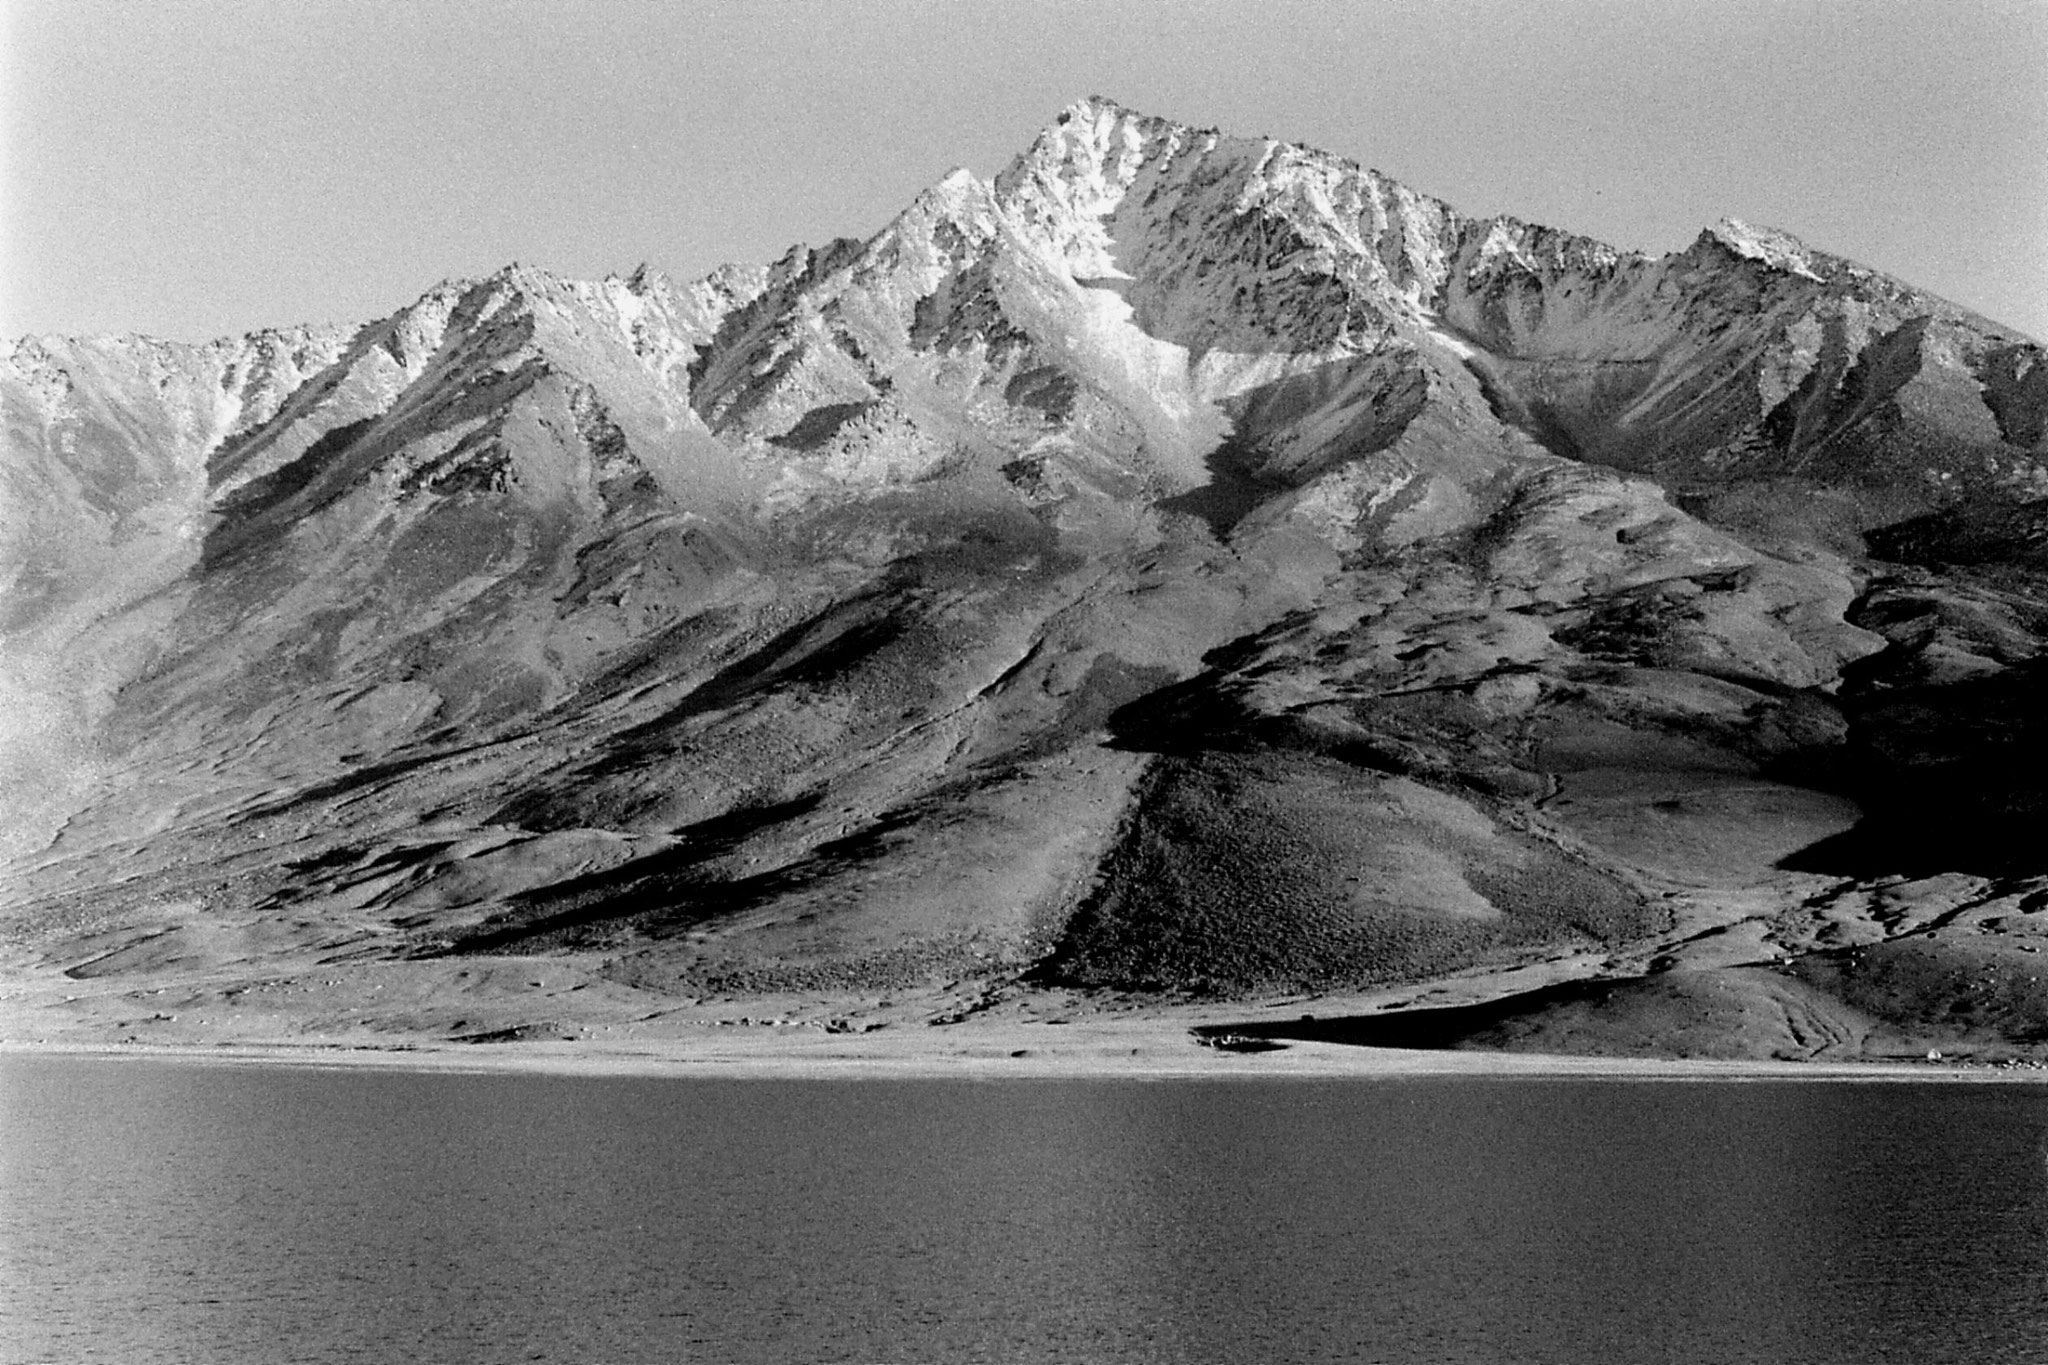 26/10/1989: 11: Shandur Pass, mountains on north side